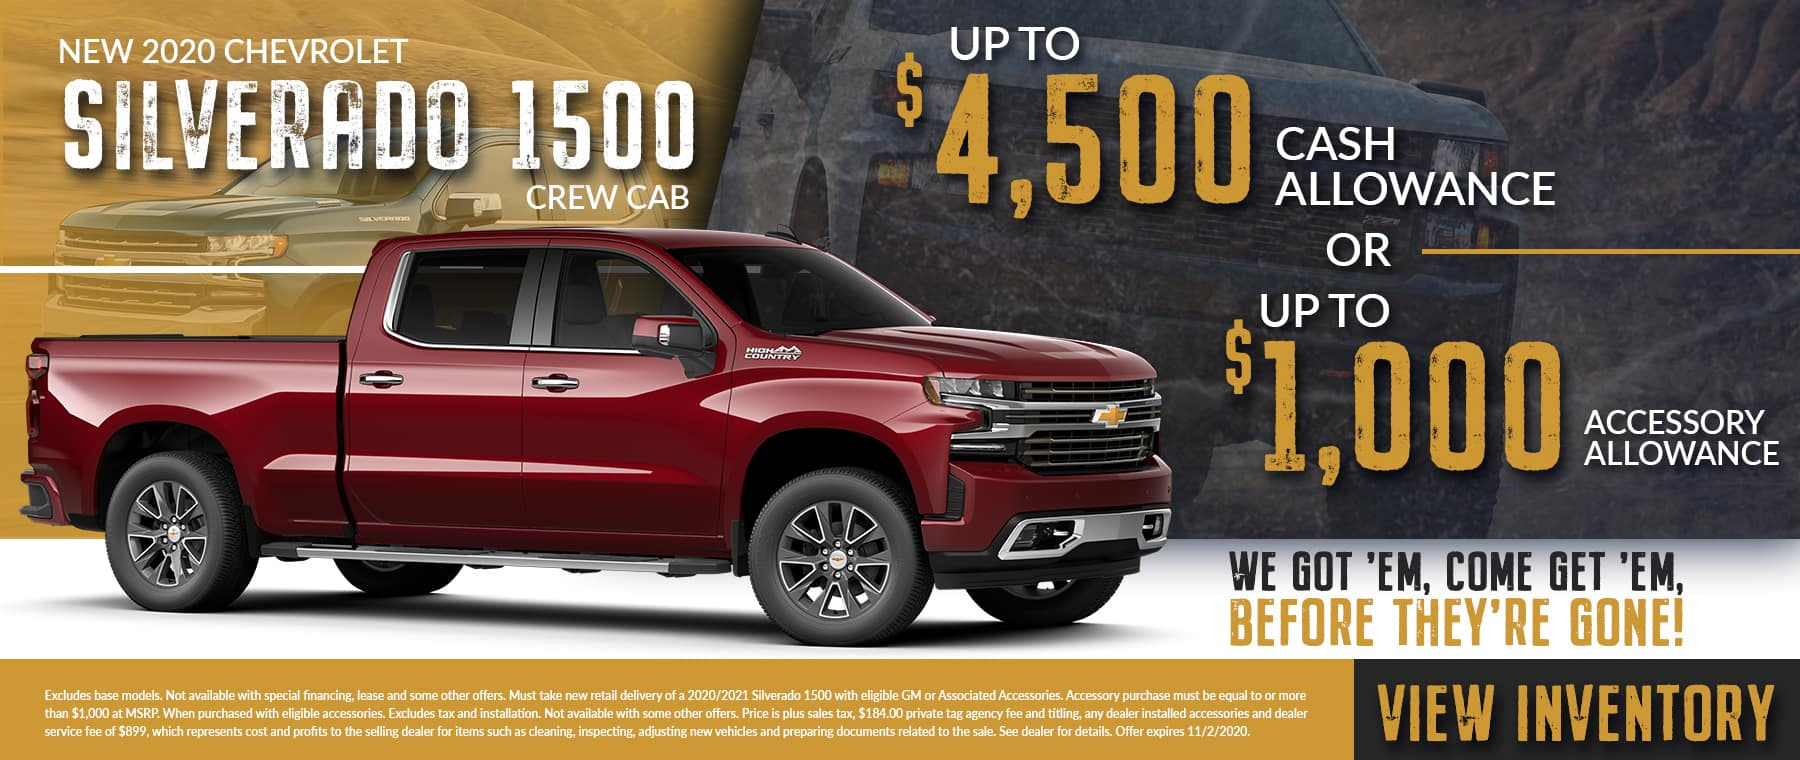 We Got 'Em, Come Get 'Em, Before They're Gone | New 2020 Chevrolet Silverado 1500 Crew Cab | Up To $4,500 Cash Allowance OR Up To $1,000 Accessory Allowance